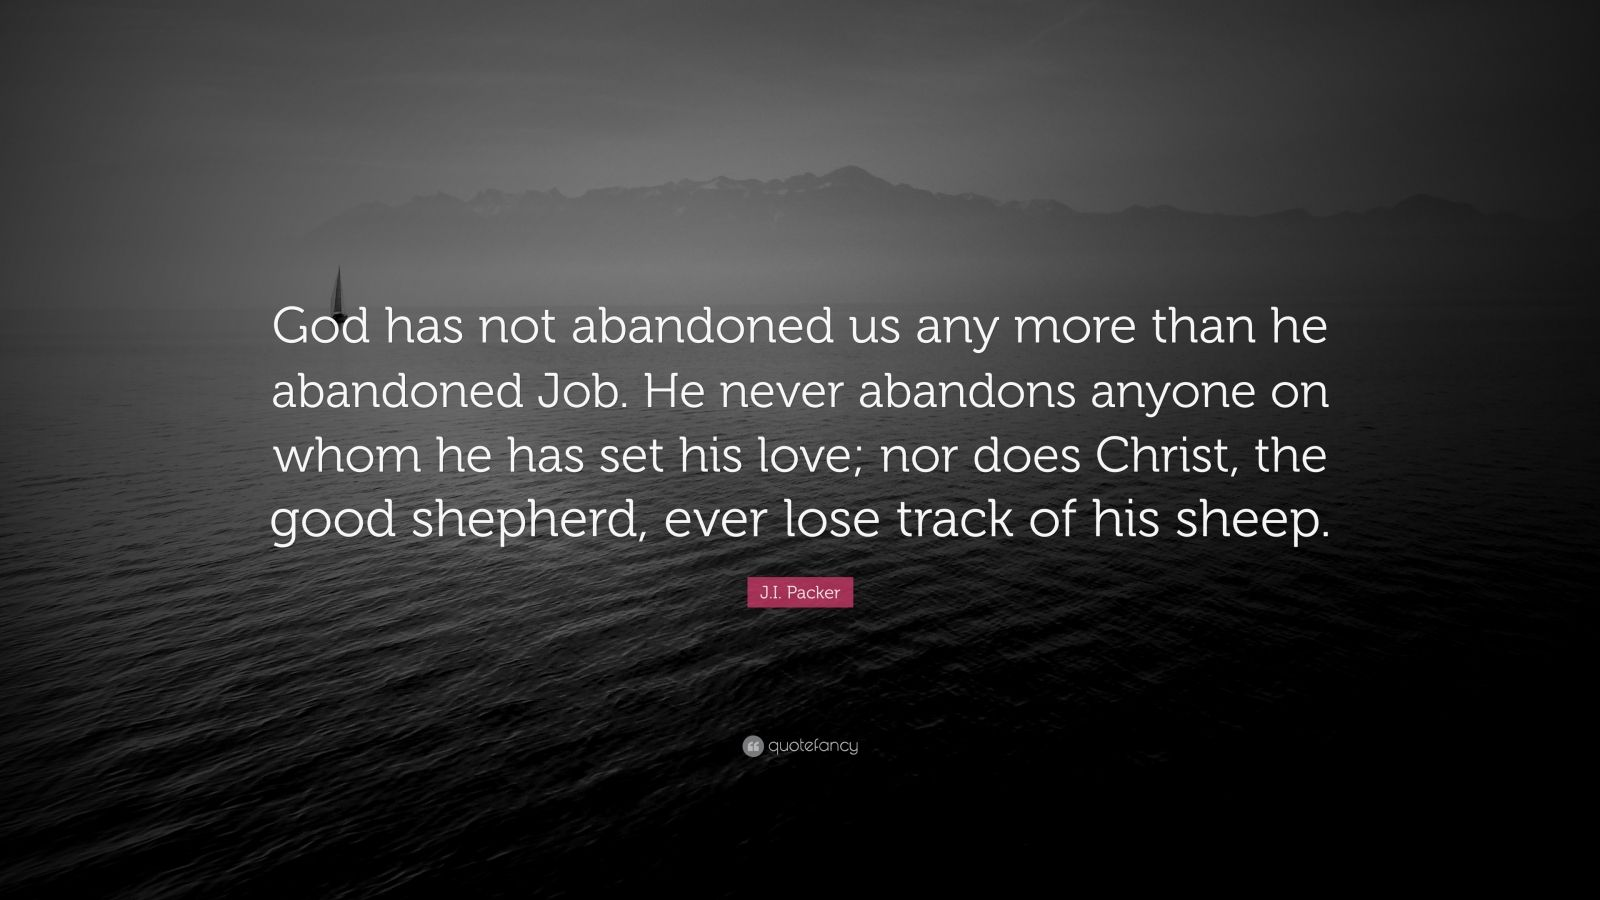 """J.I. Packer Quote: """"God has not abandoned us any more than he abandoned Job. He never abandons anyone on whom he has set his love; nor does Christ, the good shepherd, ever lose track of his sheep."""""""